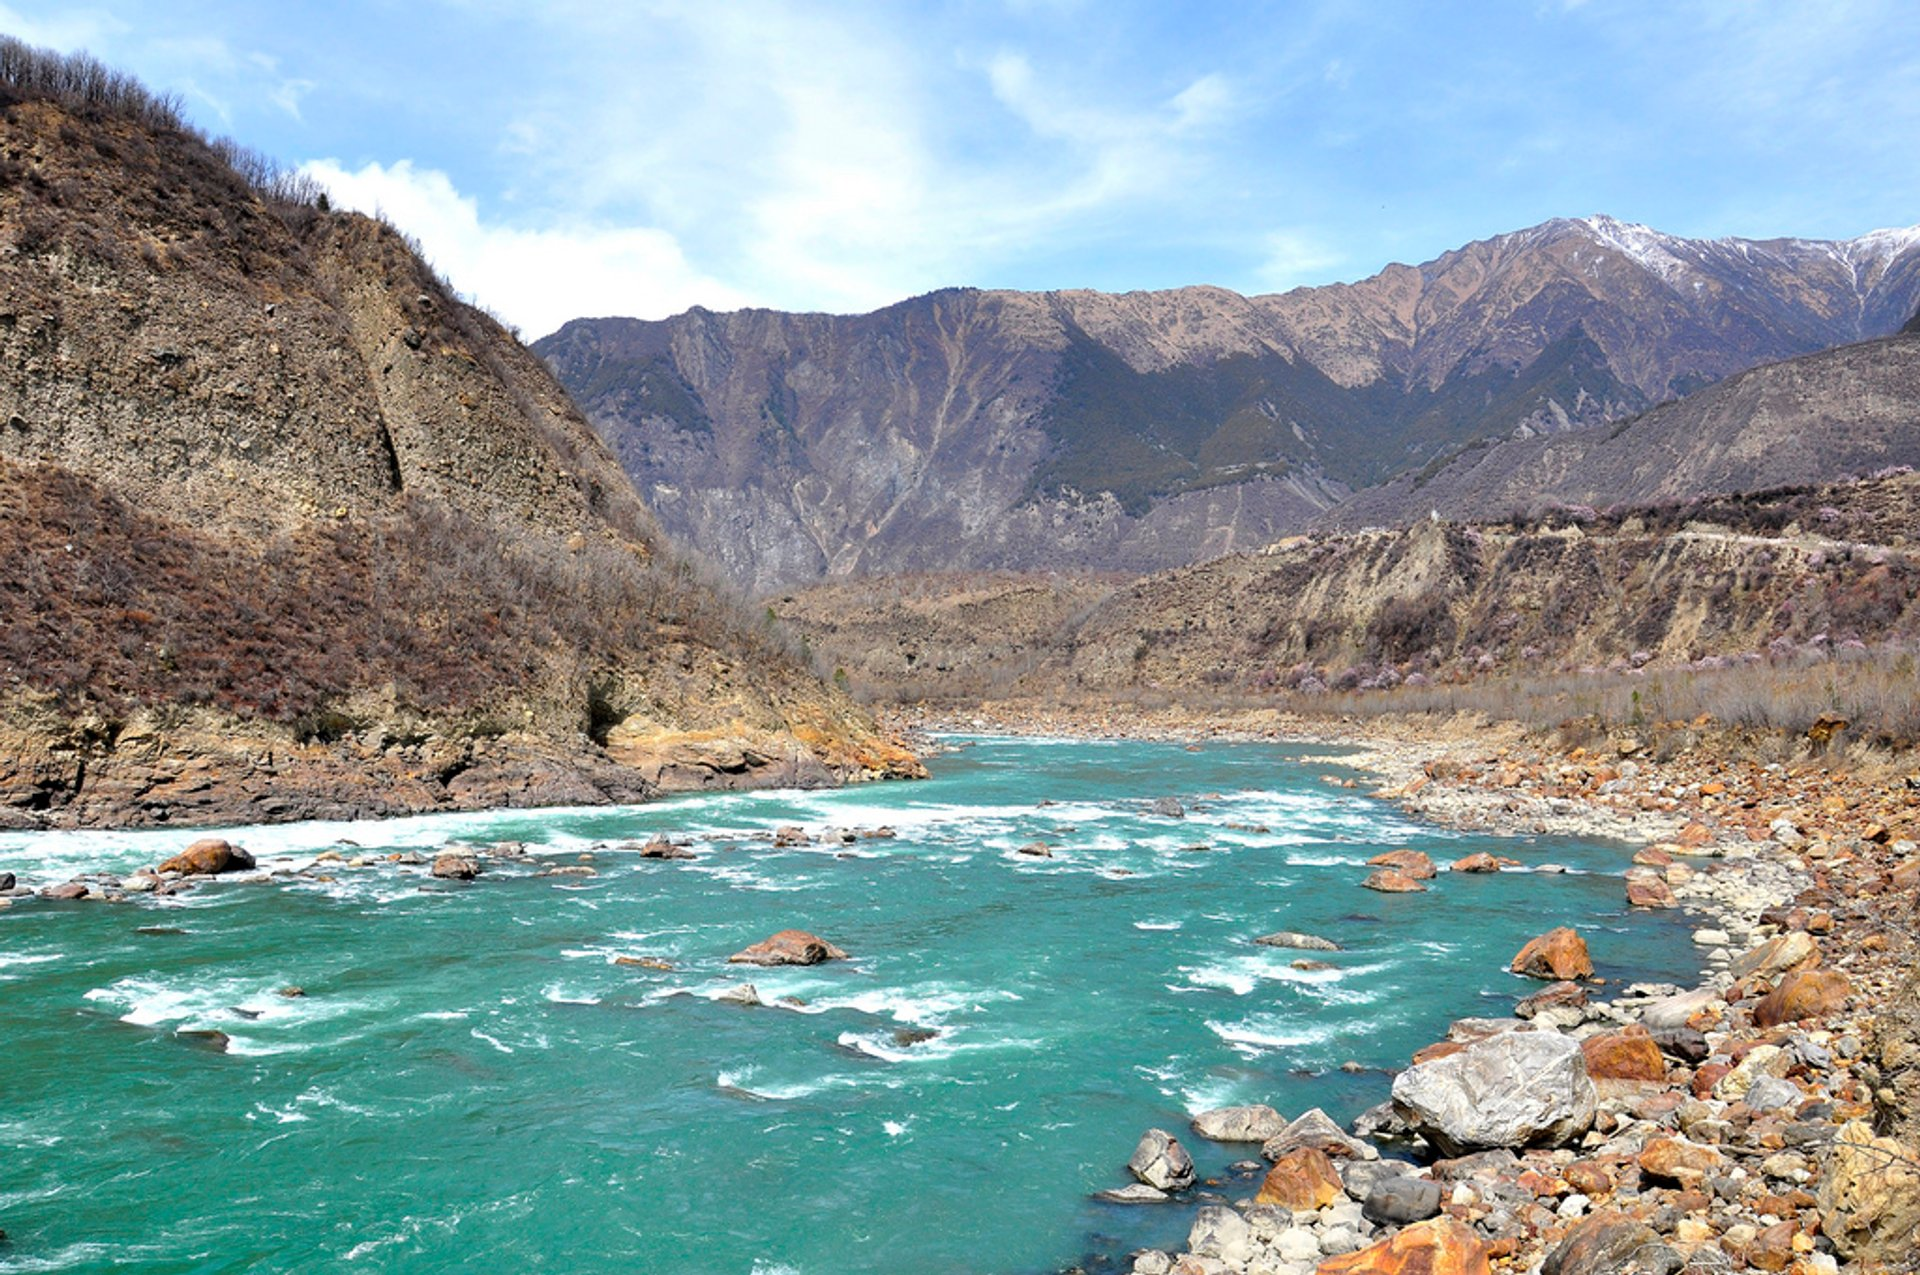 Yarlung Tsangpo Canyon in Tibet 2020 - Best Time